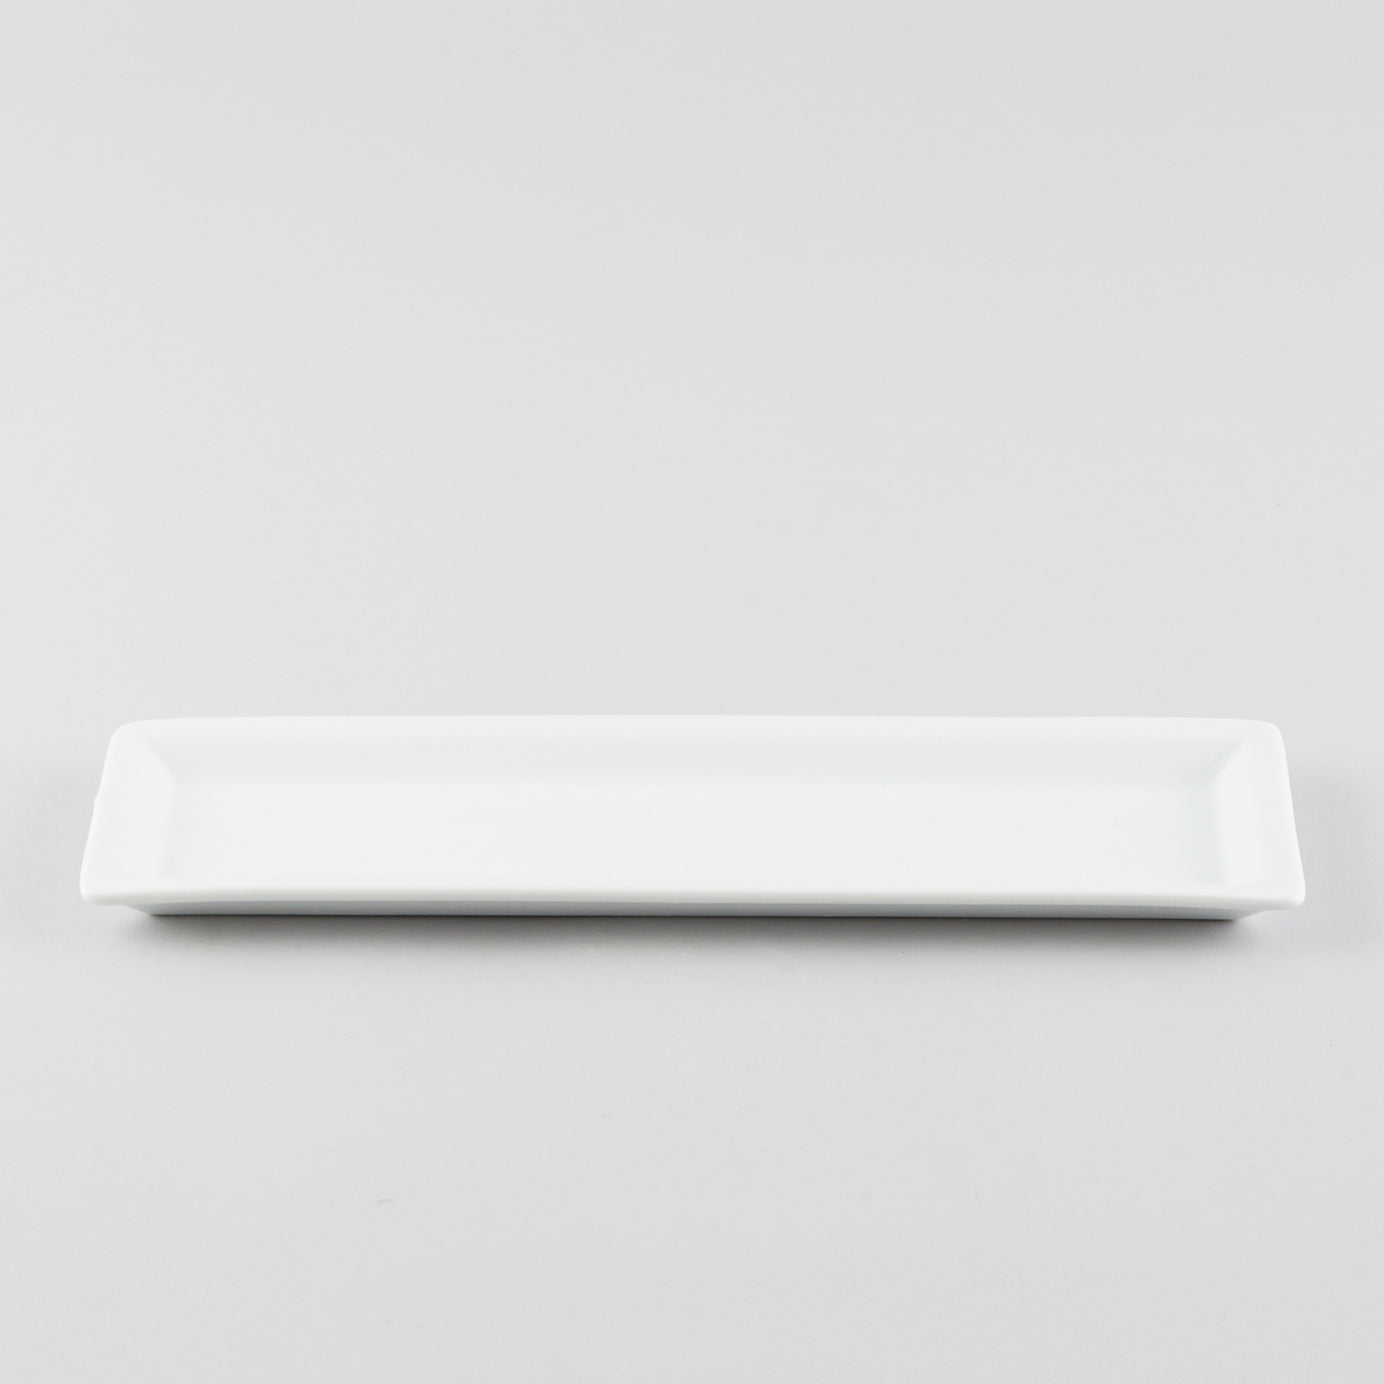 Narrow Rectangle Plate - White